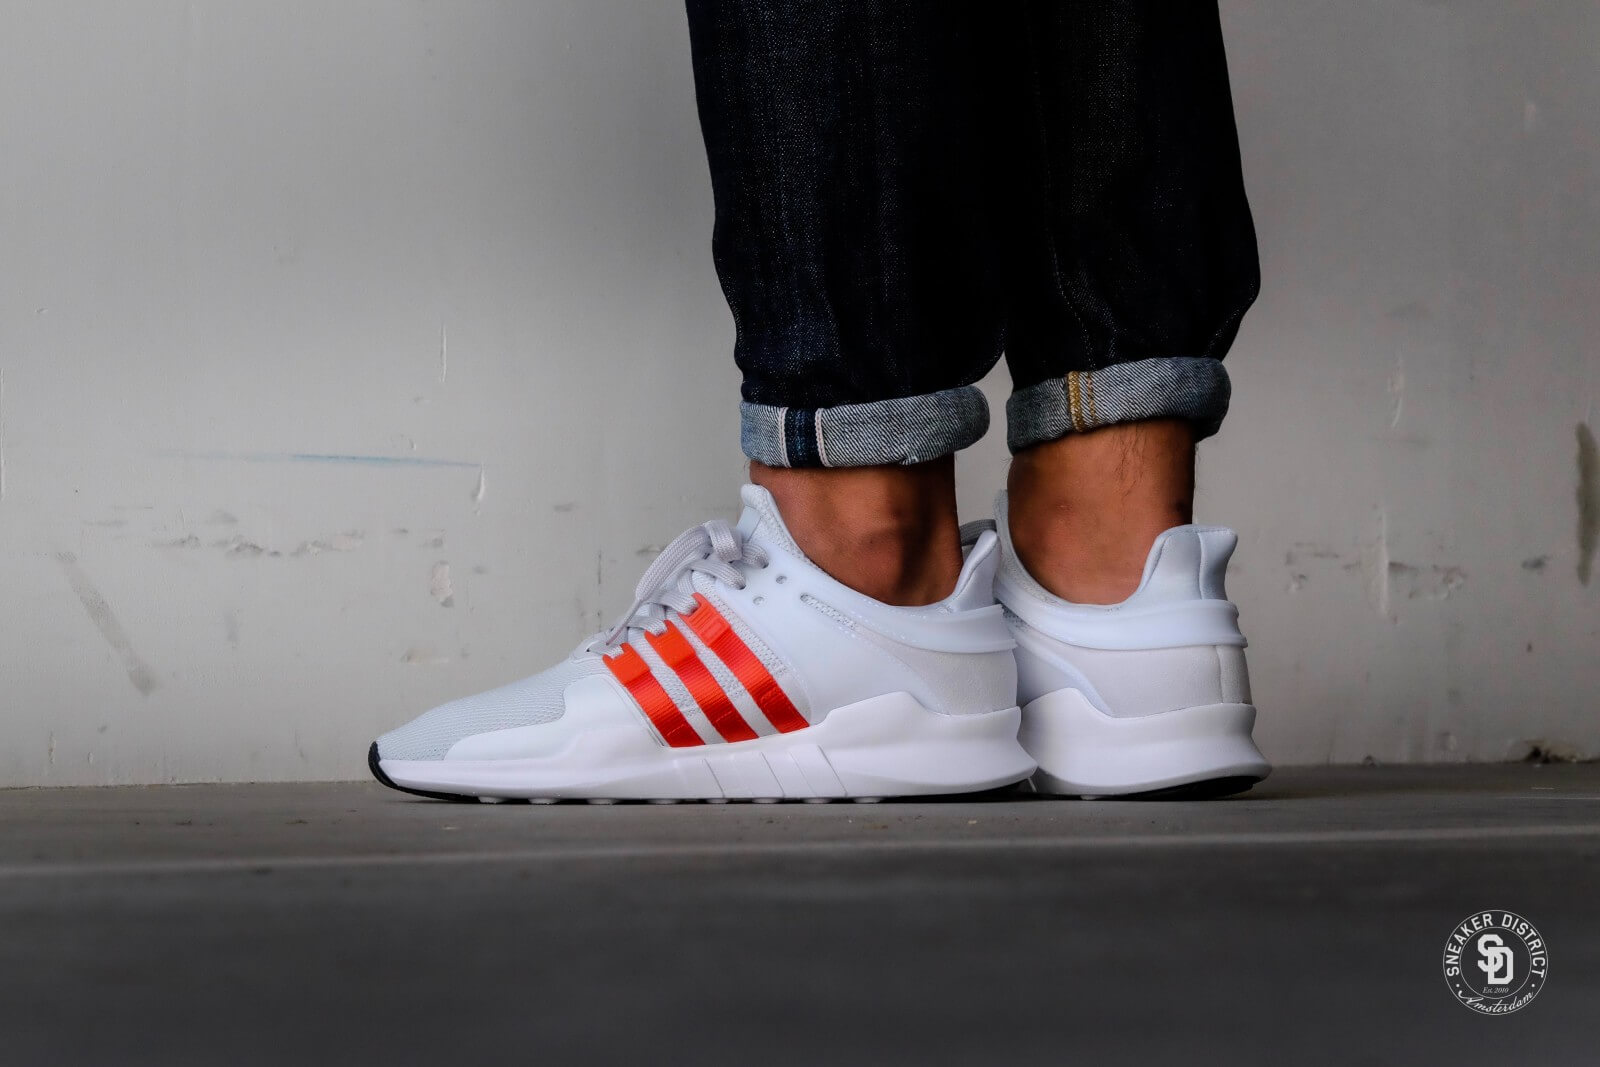 Adidas EQT Support ADV Clear GreyBold OrangeFootwear White BY9581